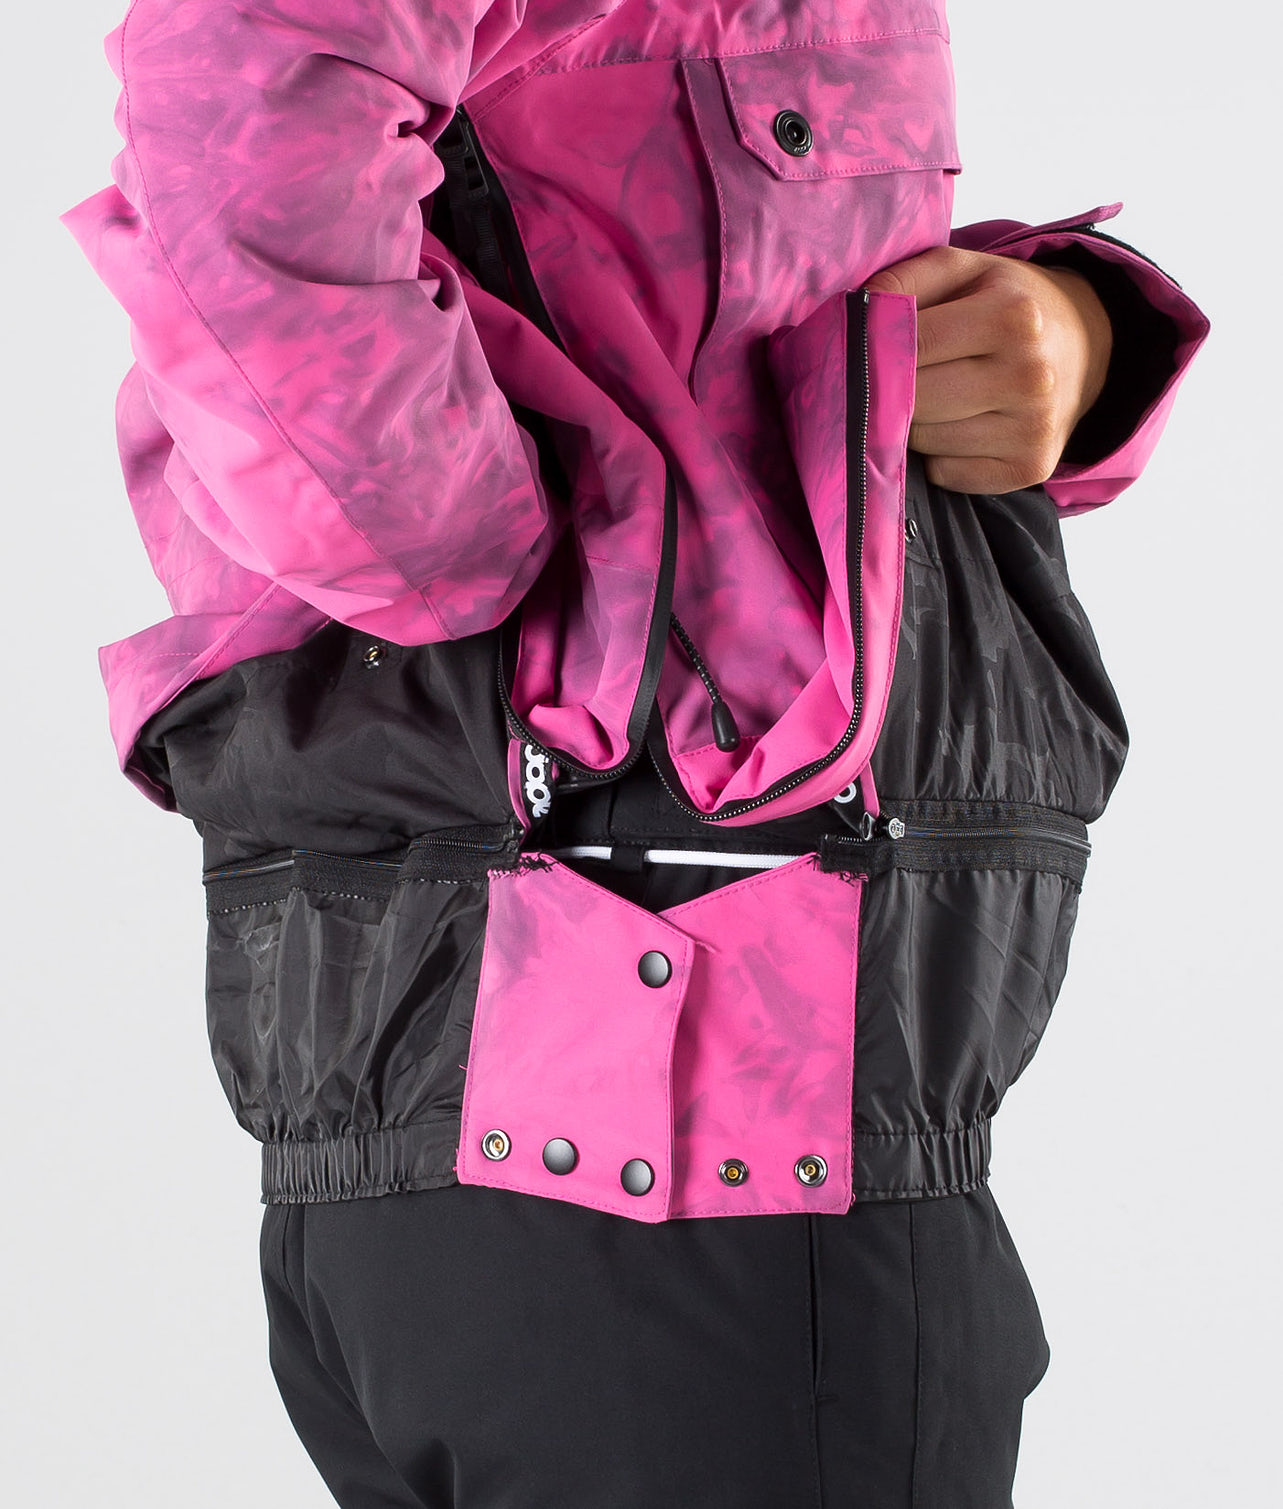 Buy Annok W Snowboard Jacket from Dope at Ridestore.com - Always free shipping, free returns and 30 days money back guarantee